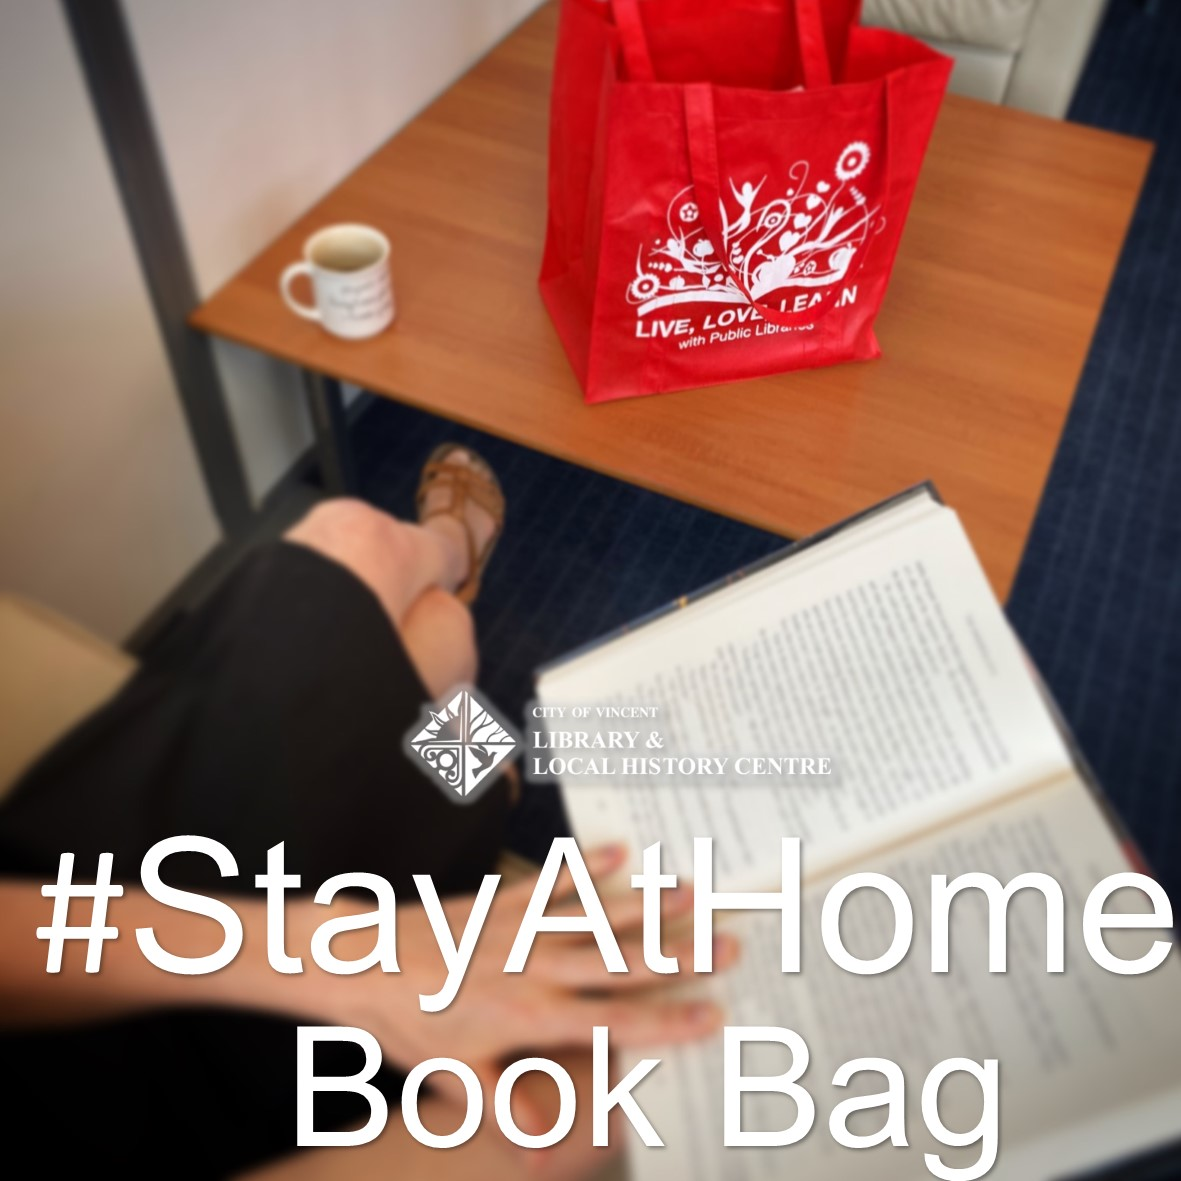 Stay at home book bag